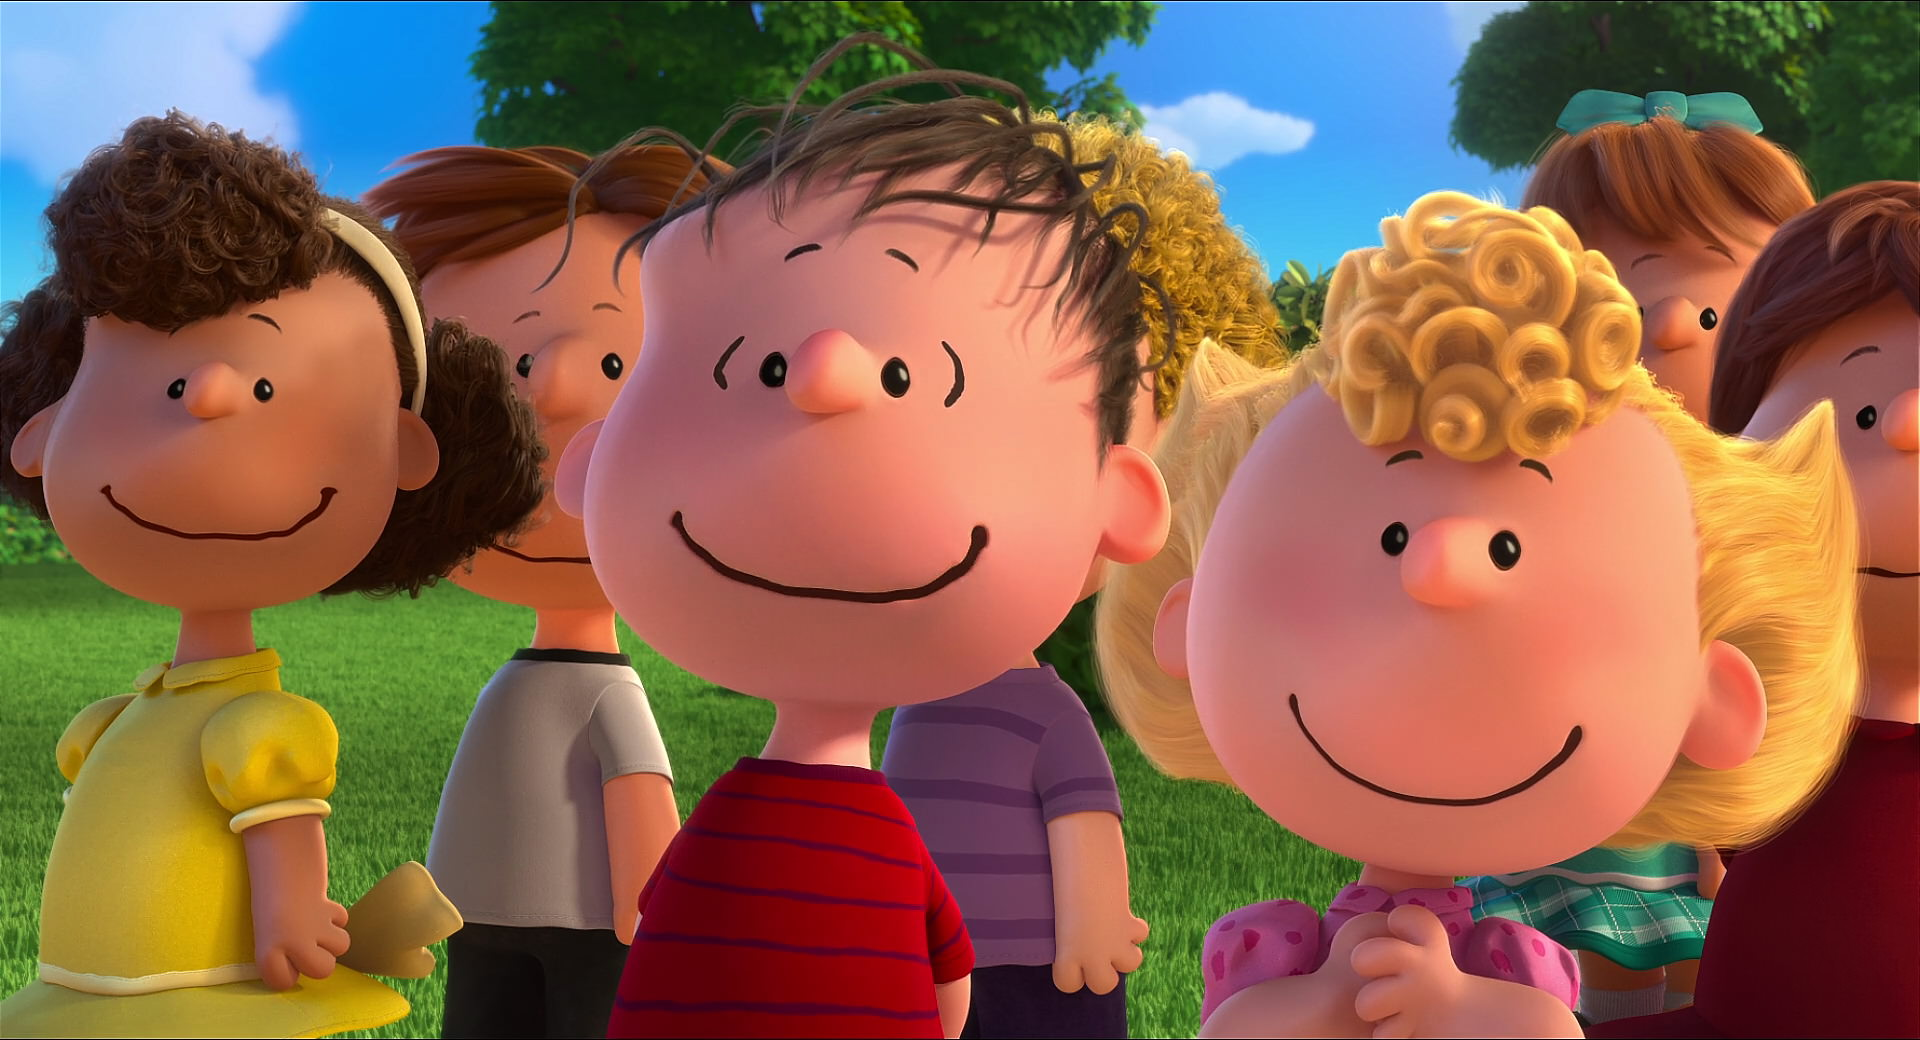 Download The Peanuts 2015 Full Movie Download Blue Sky | Lobster House